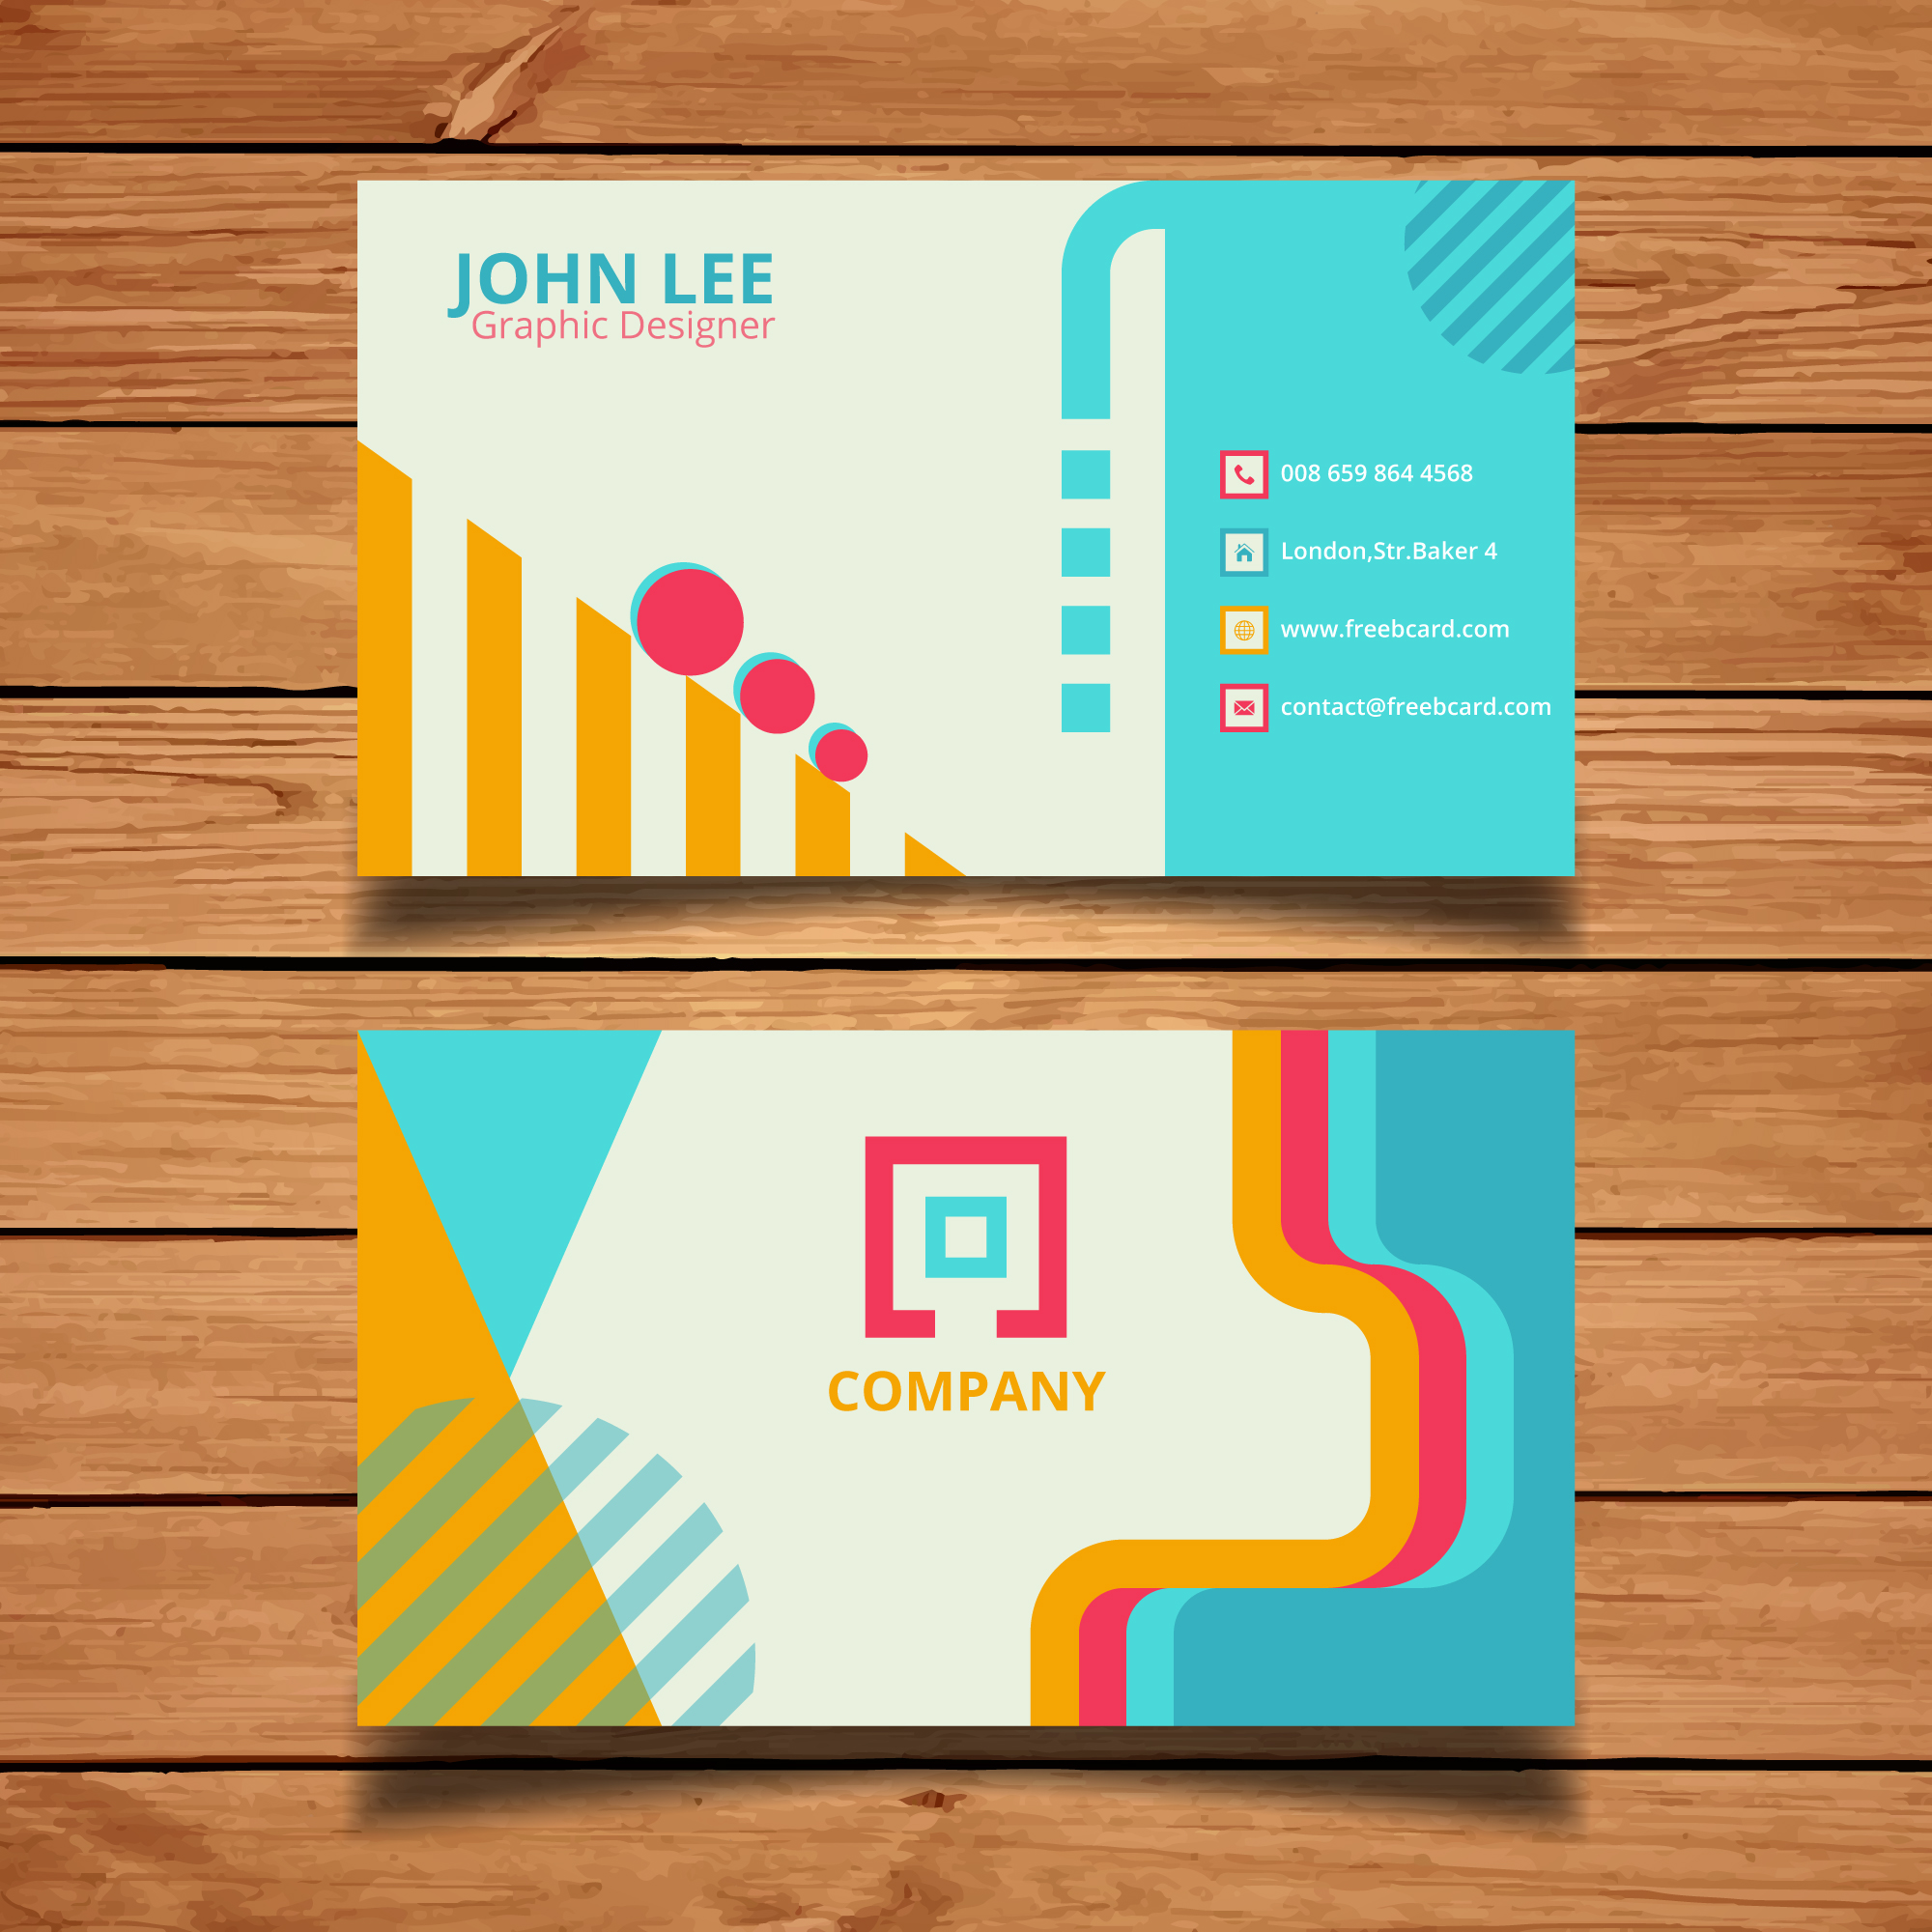 Geometric corporate card with vivid colors